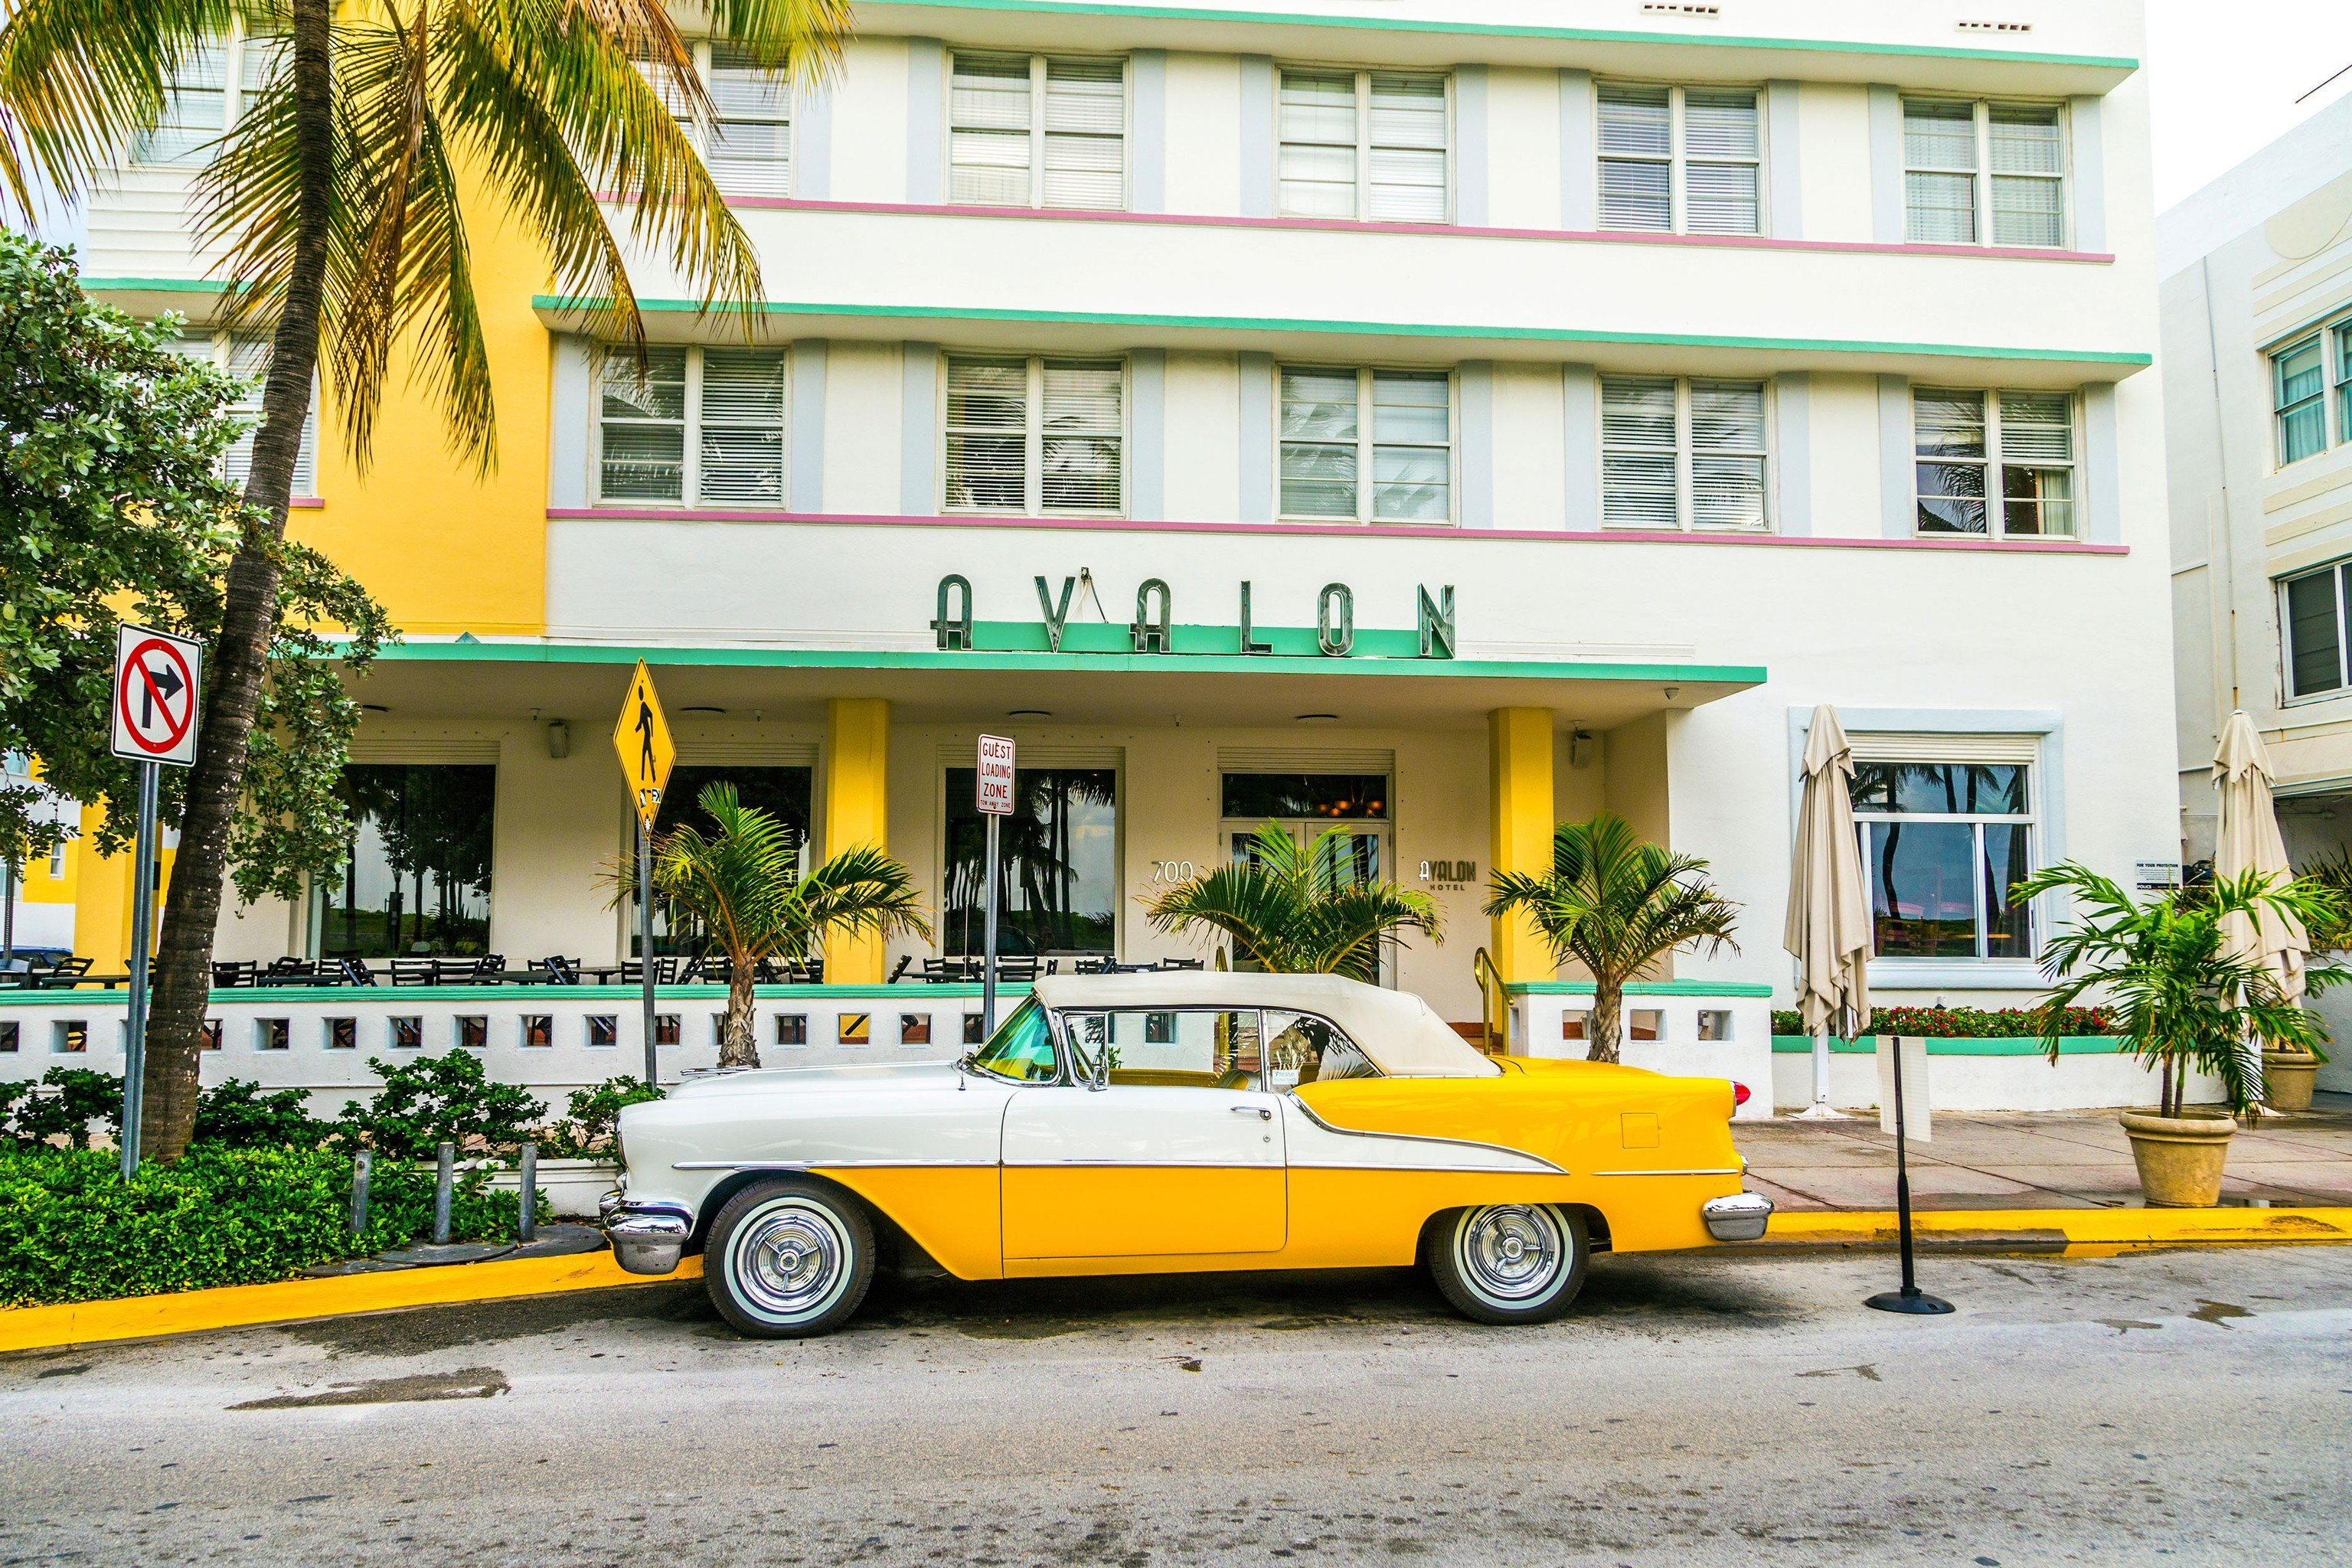 Offbeat building yellow car vehicle parked road neighbourhood street automobile make infrastructure taxi